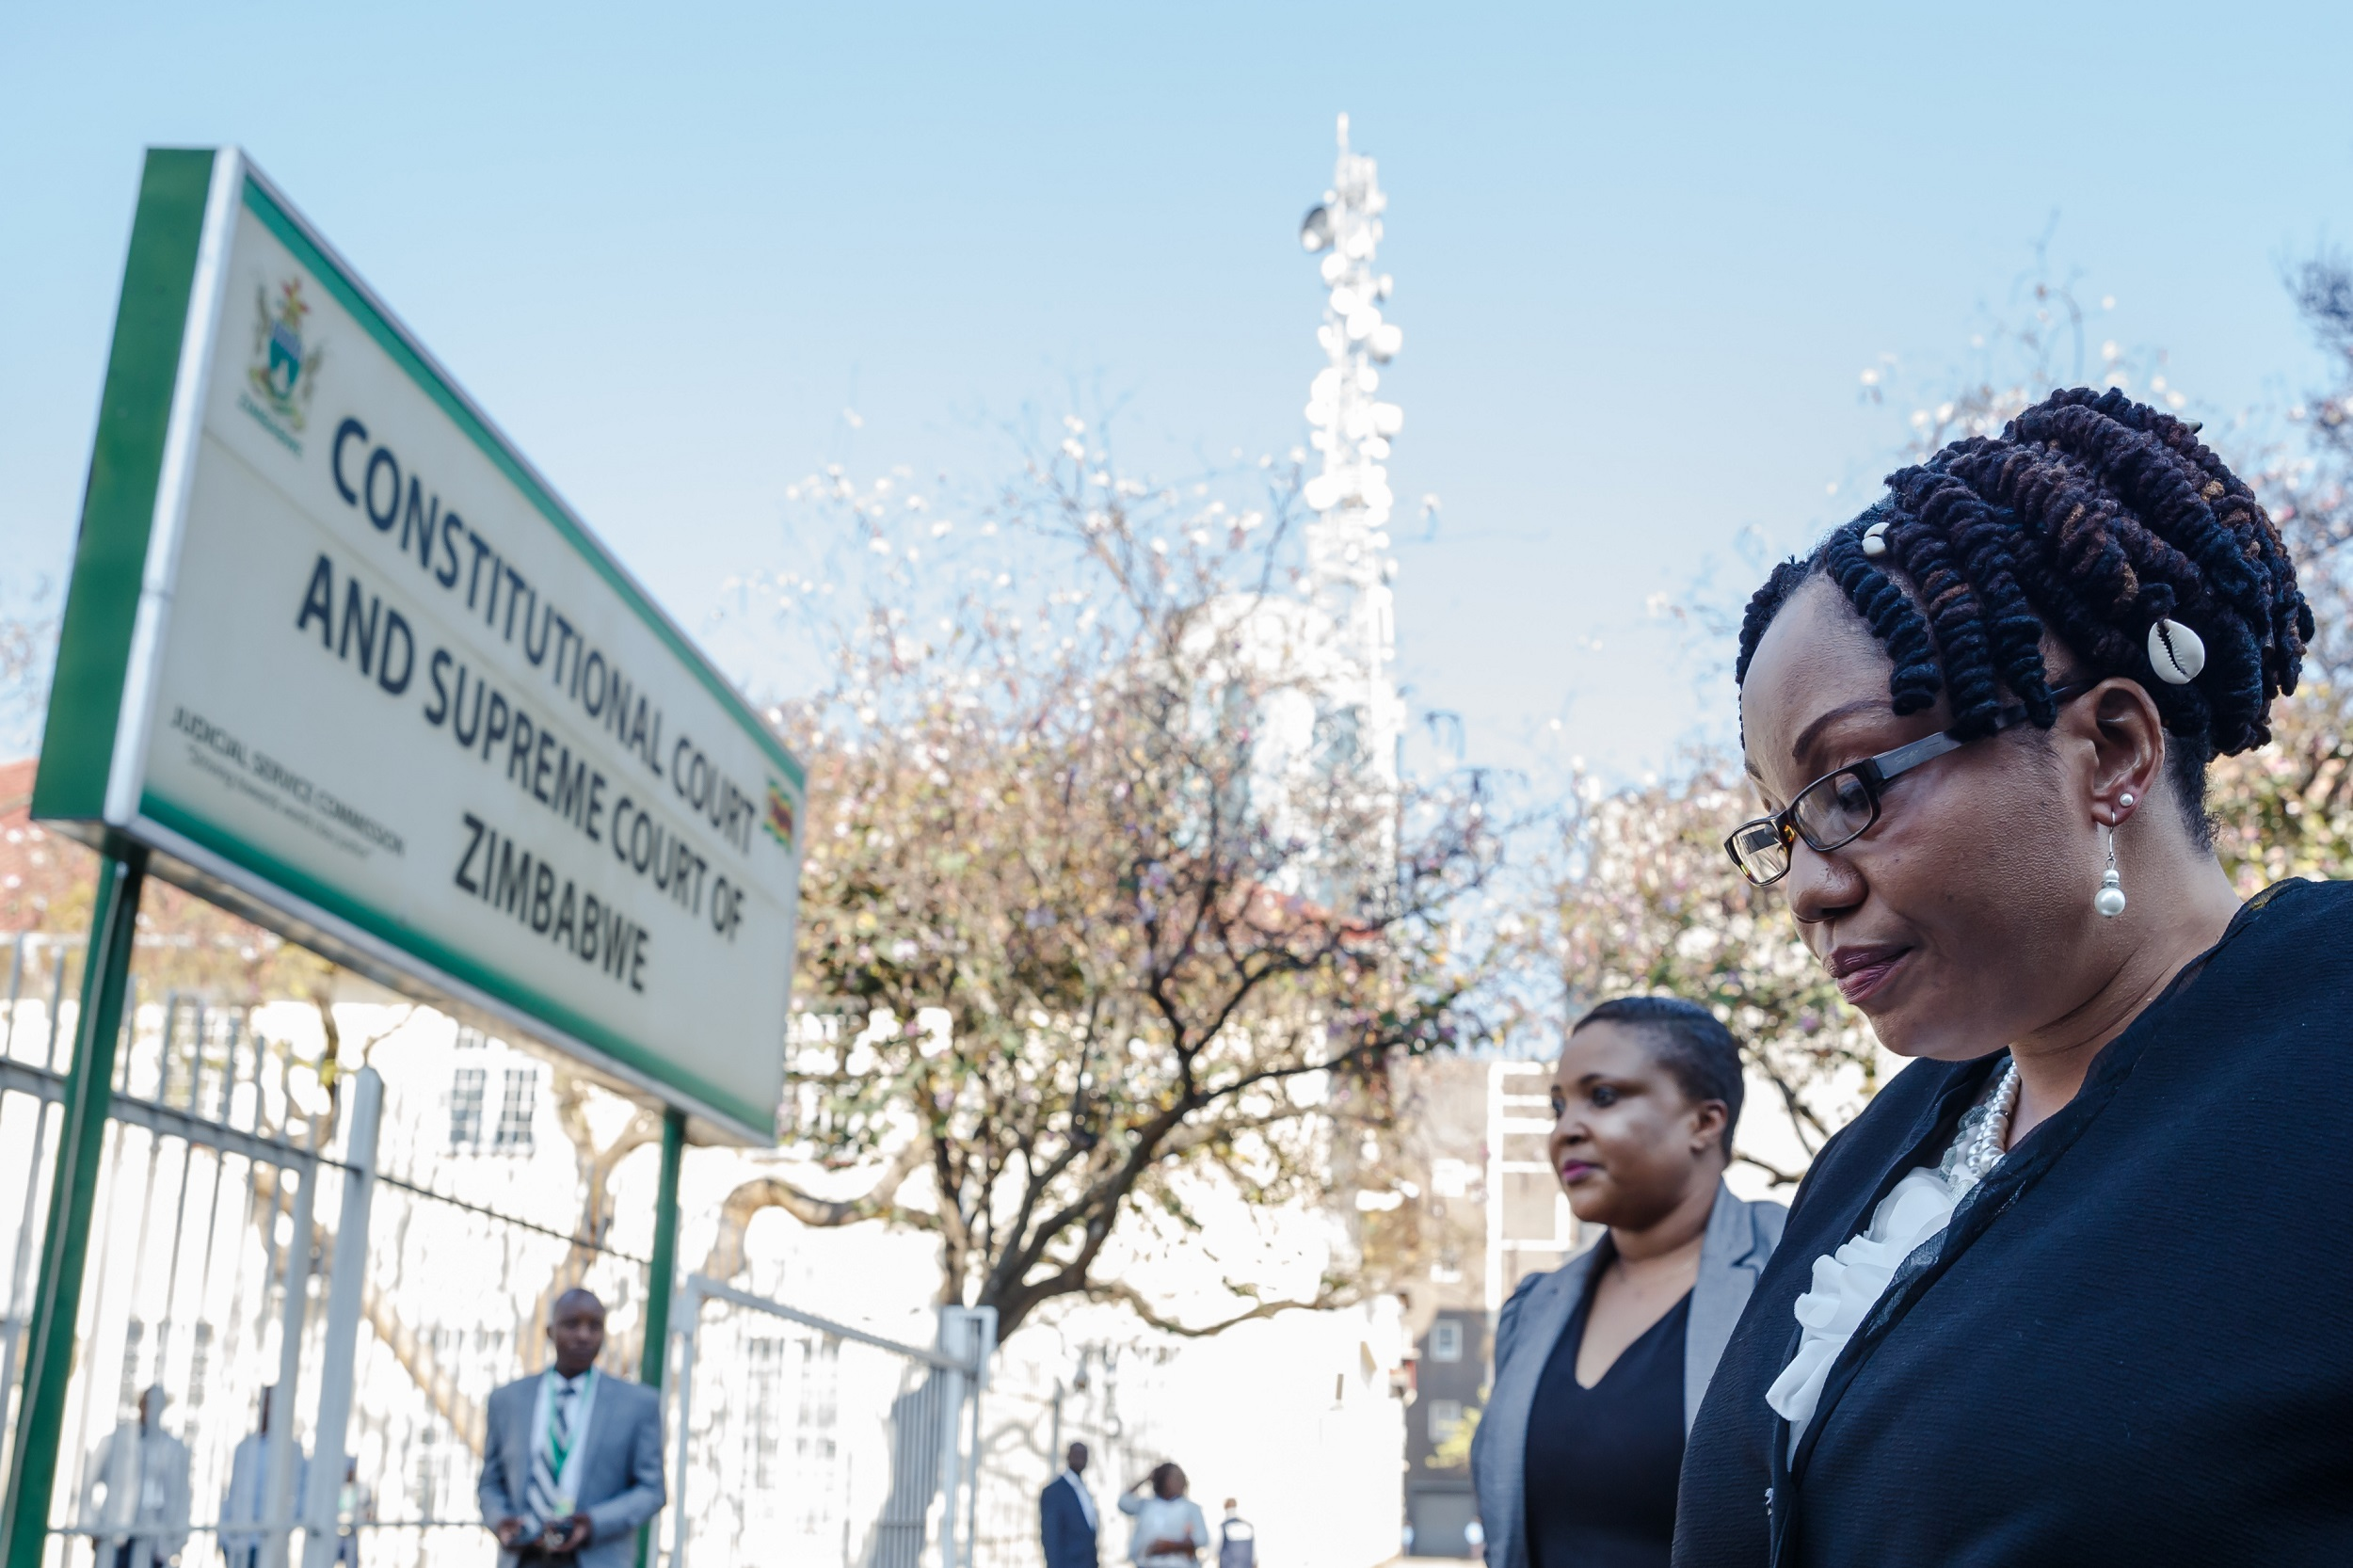 Zimbabwe Electoral Commission (ZEC) chairperson Priscilla Chigumba arrives at Harare courthouse. The Constitutional Court said it would hand down its verdictafter considering arguments put before judges on Wednesday.